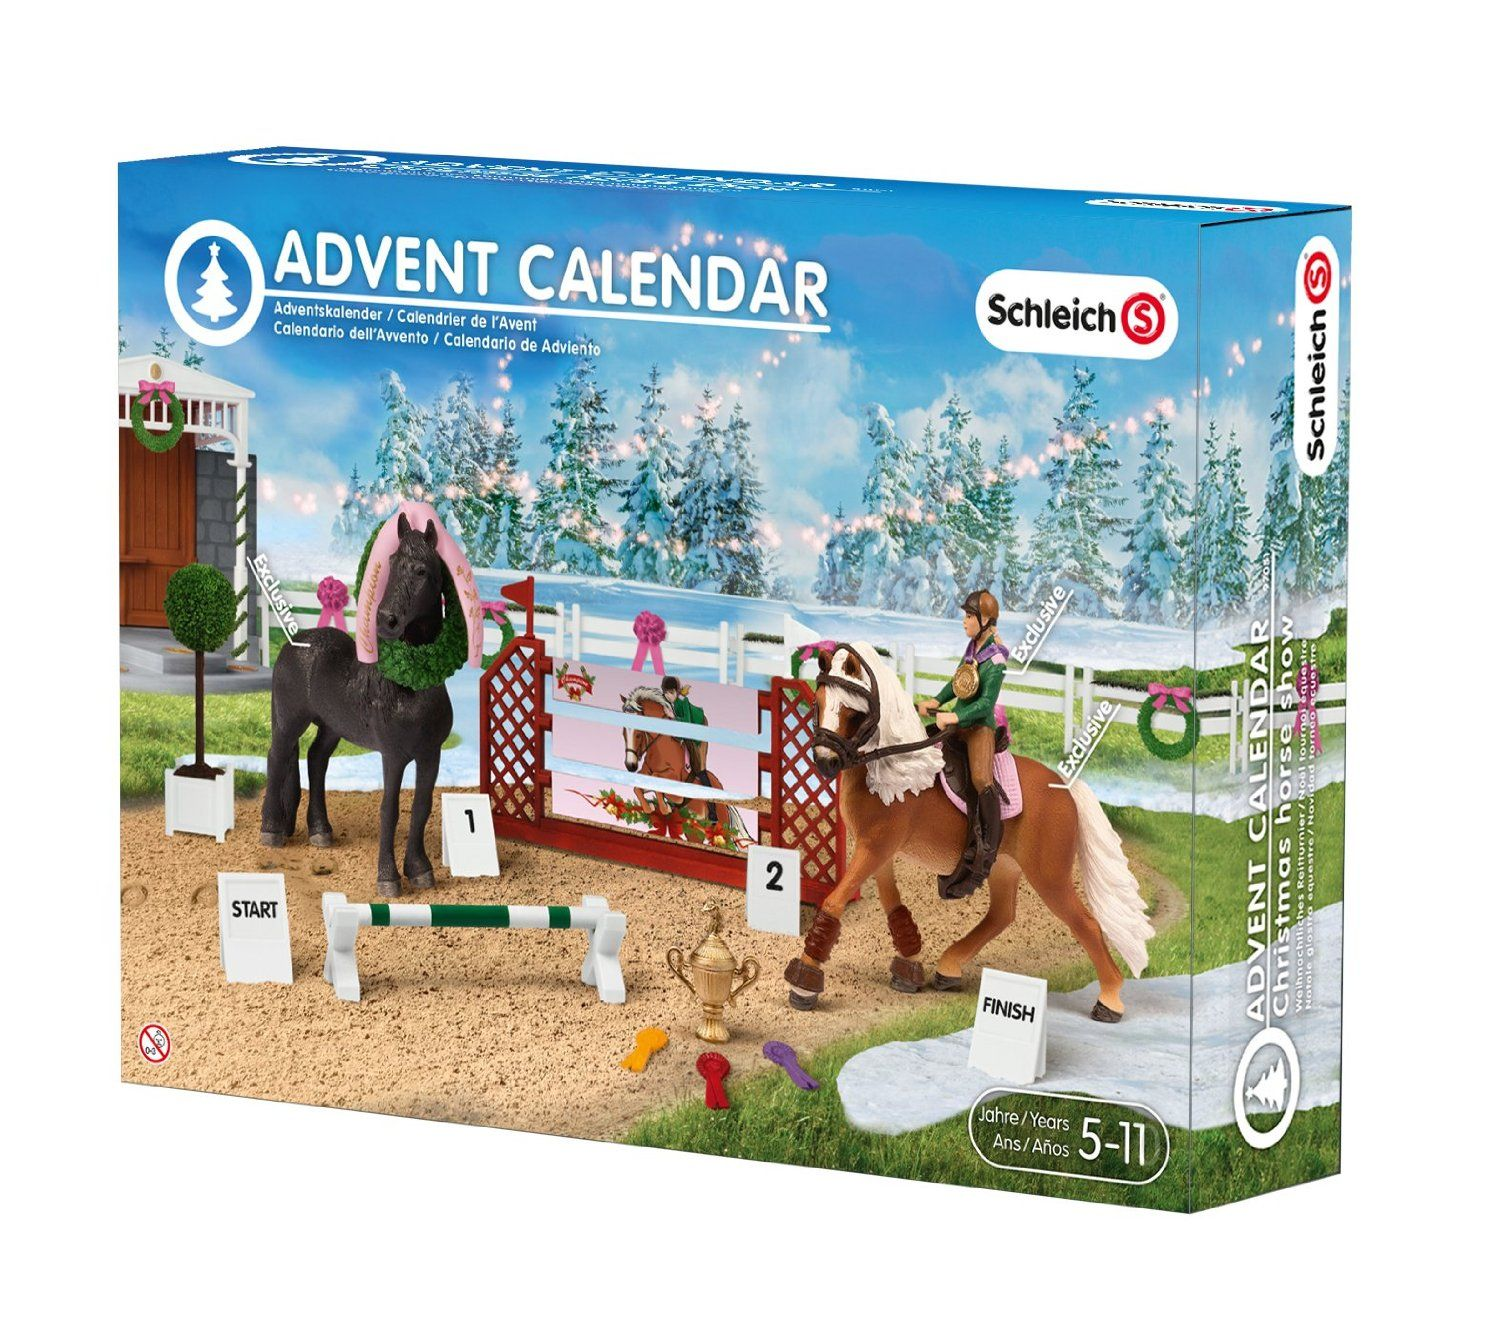 Weihnachtskalender Kaufhof.Schleich Horse Christmas Advent Calendar Amazon Co Uk Toys Games